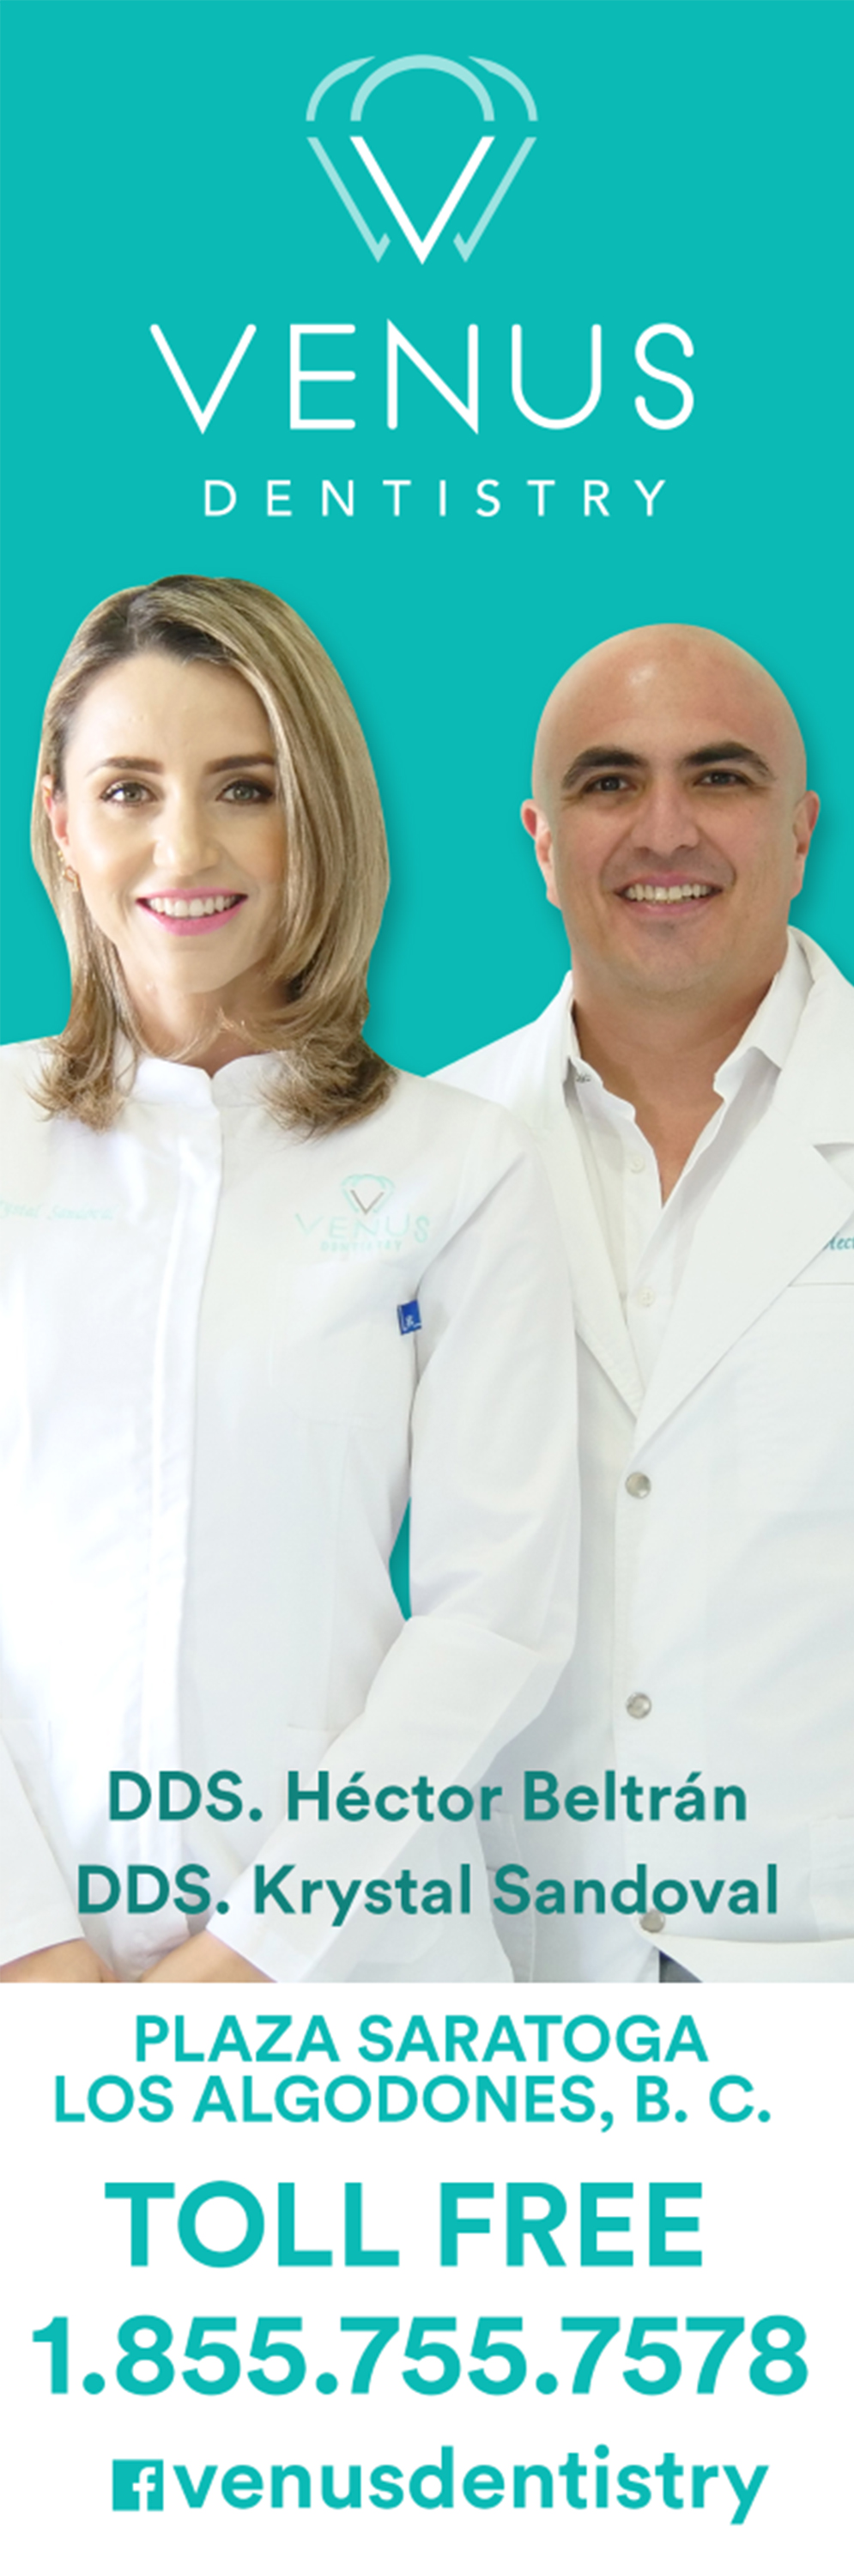 VENUS DENTISTRY DDS Héctor Beltrán DDS Krystal Sandoval in Algodones  in Algodones  We are a group of specialists with high experience dentistry. We are guided by the philosophy of providing a warm and humane treatment for our patients. Dental care ina friendly & comfortable office <BR> SERVICES: Smile Design / Digital X-Ray / Teeth Cleaning / Deep Cleaning / Composite Fillings / Whitening / Porcelain Crowns / Free Metal Crowns / Implants / Bone Graft / Sinus Lifting / Implant Suported Overdenture / Extraction / General Oral Surgery / Relines / Veneers / Dentures / Partuals / Bridges / Root Canals / Zirconia Crowns          SMILE DESIGN DIGITAL X-RAY TEETH CLEANING  DEEP CLEANING COMPOSITE FILLINGS  WHITENING  PORCELAIN CROWNS  FREE METAL CROWNS  IMPLANTS  BONE GRAFT SINUS LIFTING IMPLANT SUPORTED OVERDENTURE  EXTRACTION  GENERAL ORAL SURGERY  RELINES  VENEERS  DENTURES PARTIALS  BRIDGES  ROOT CANALS  ZIRCONIA CROWNS